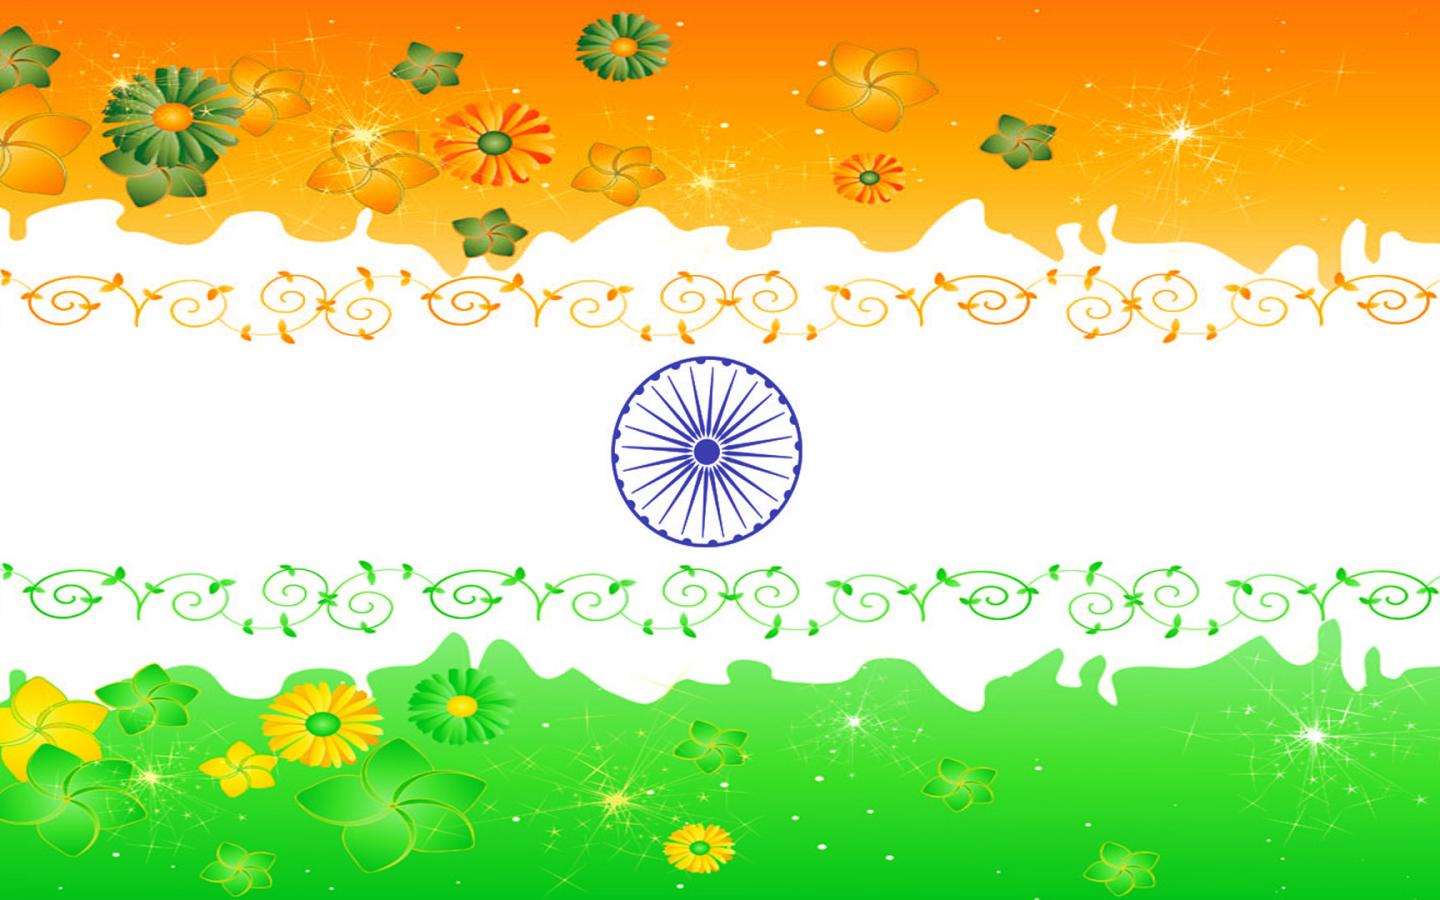 Indian Flag Animation Wallpaper India Flag With Floral Ornaments In Three Colors Hd